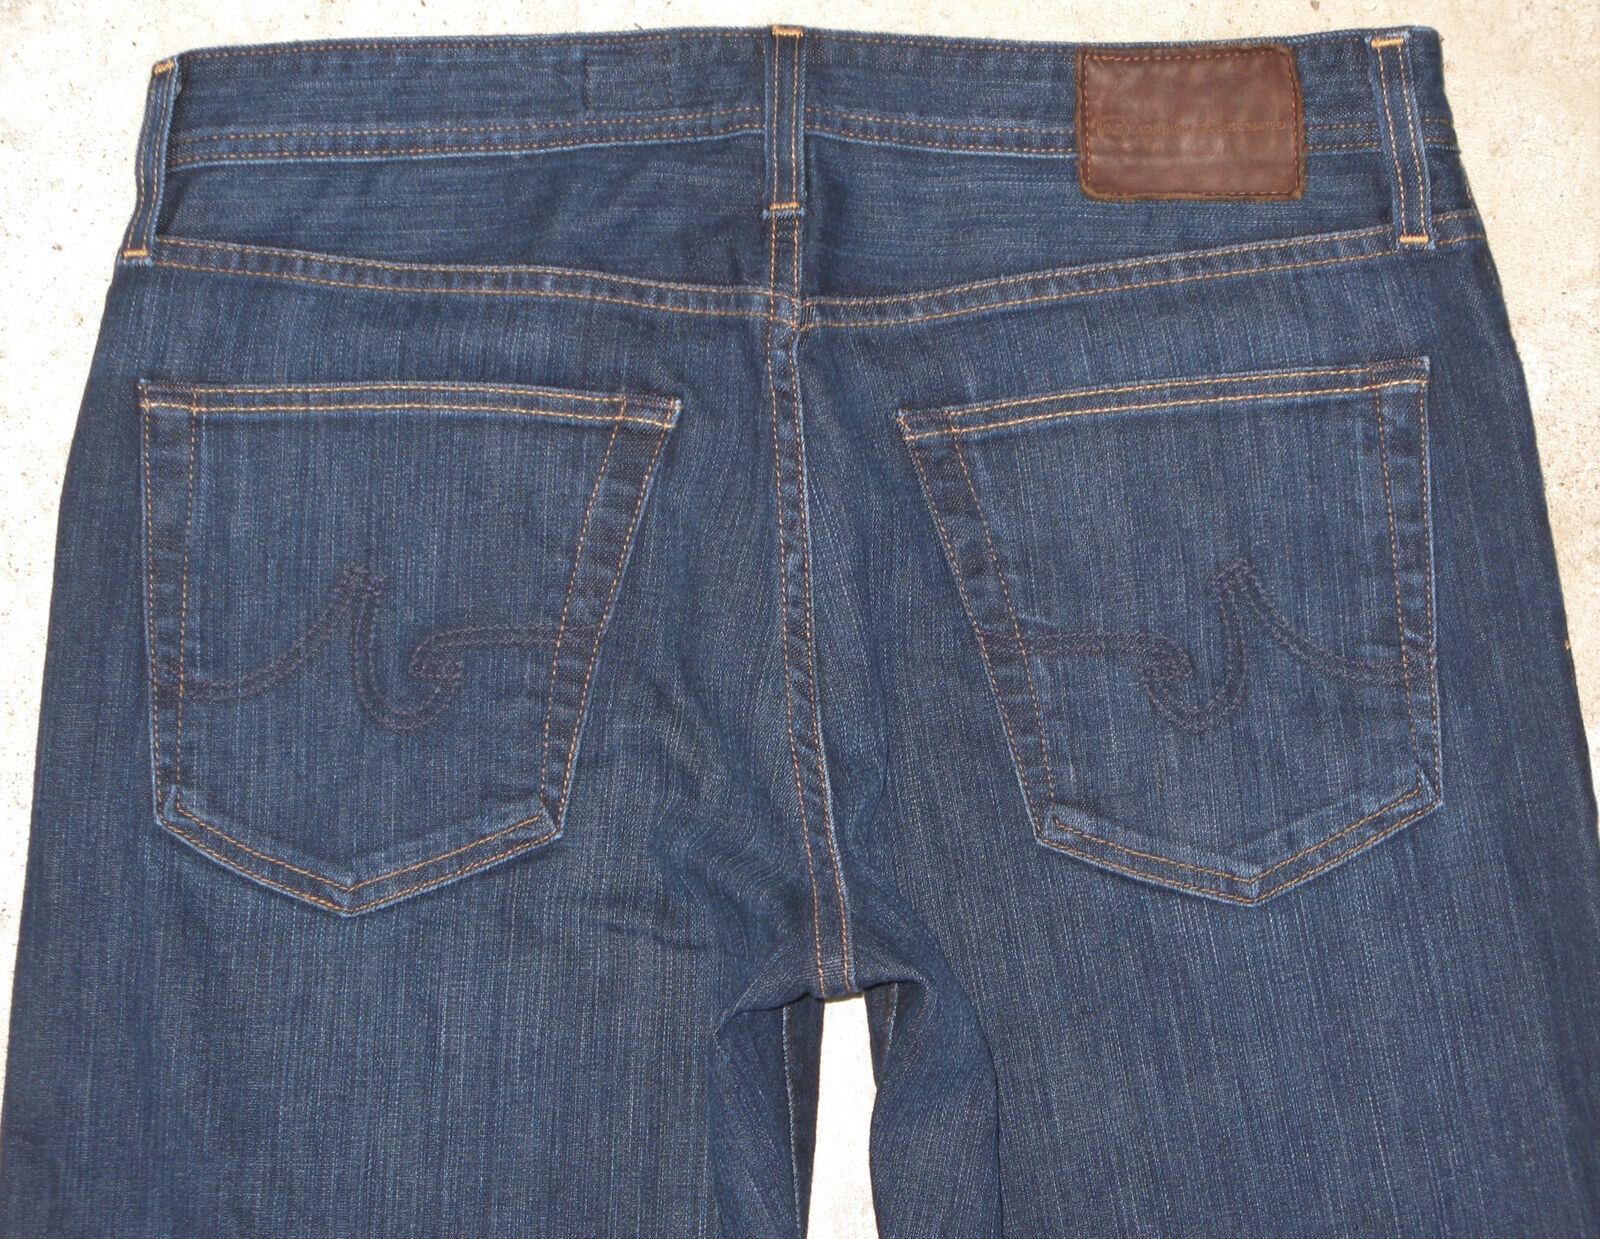 AG ADRIANO goldSCHMIED Mens Hero Relaxed Jeans Sz 33 X 33 Dark w Stretch